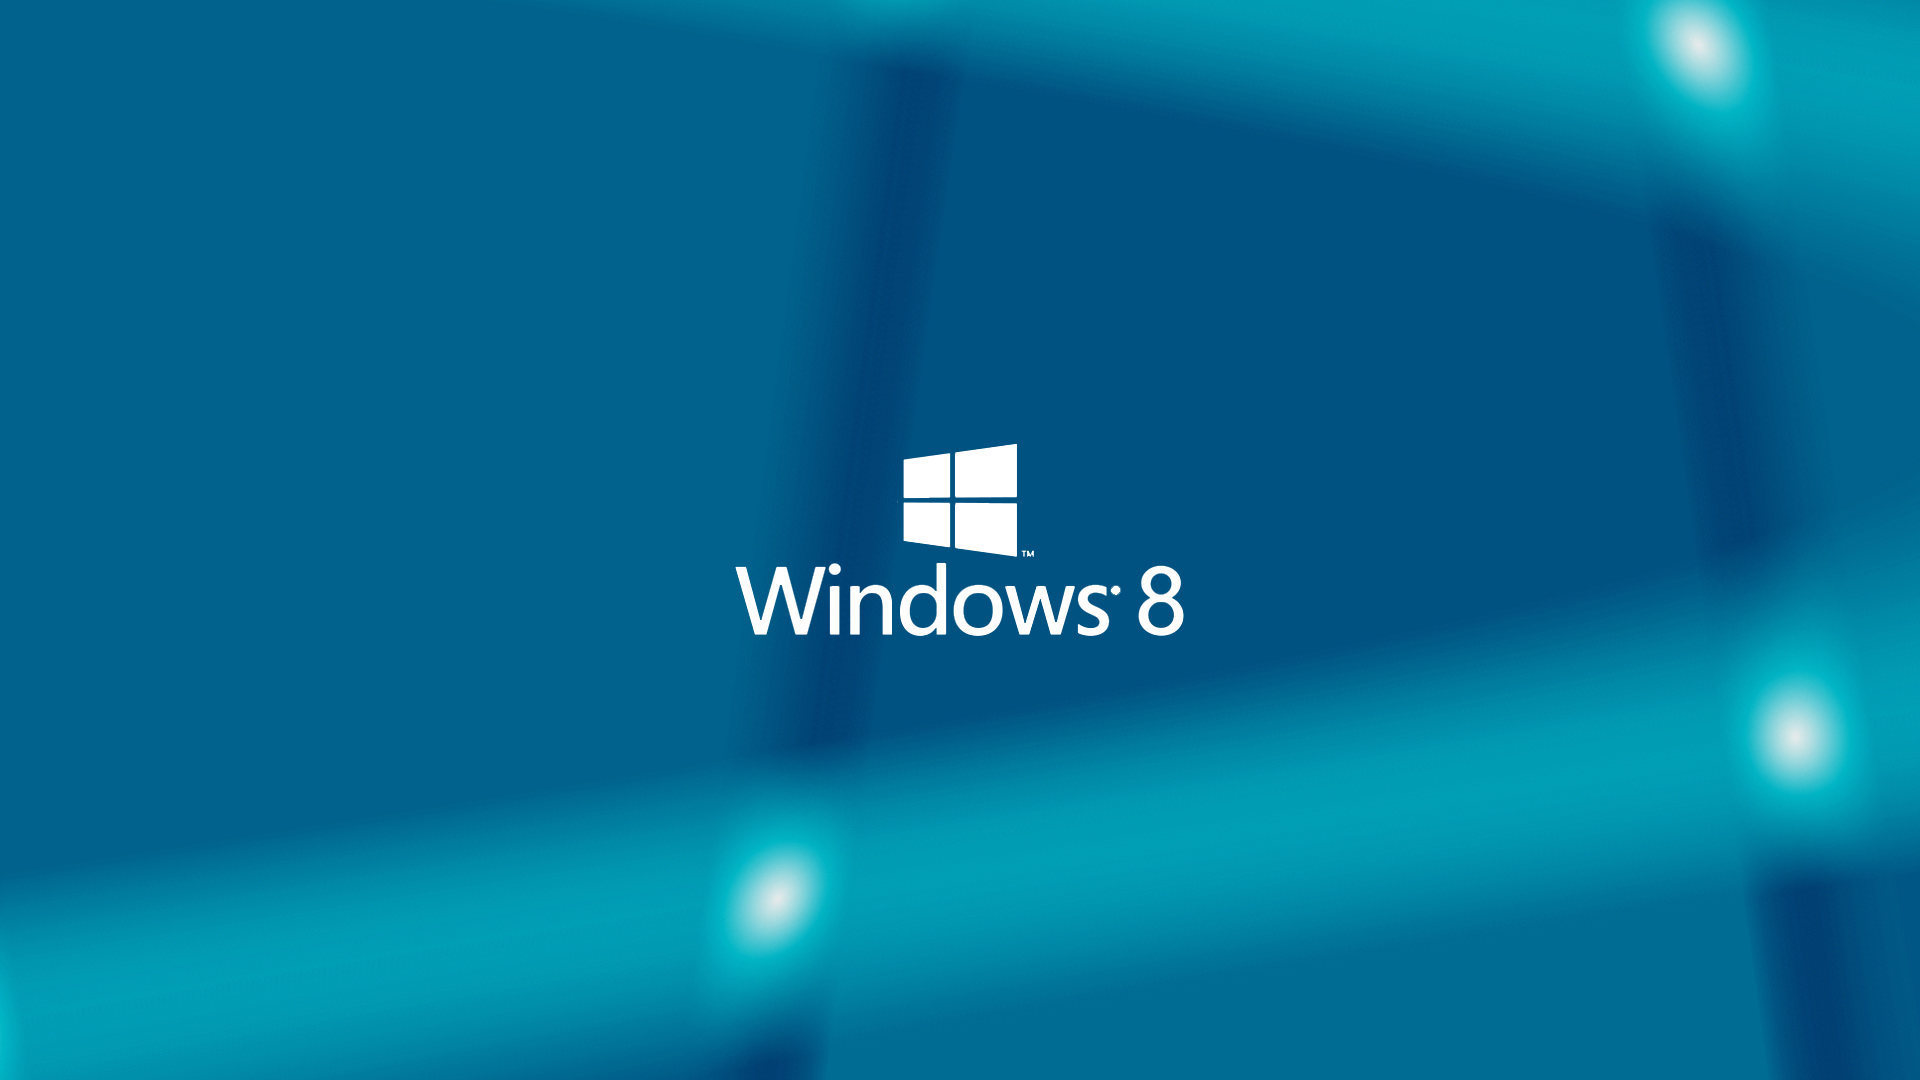 Microsoft Desktop Backgrounds 1080p 1920x1080